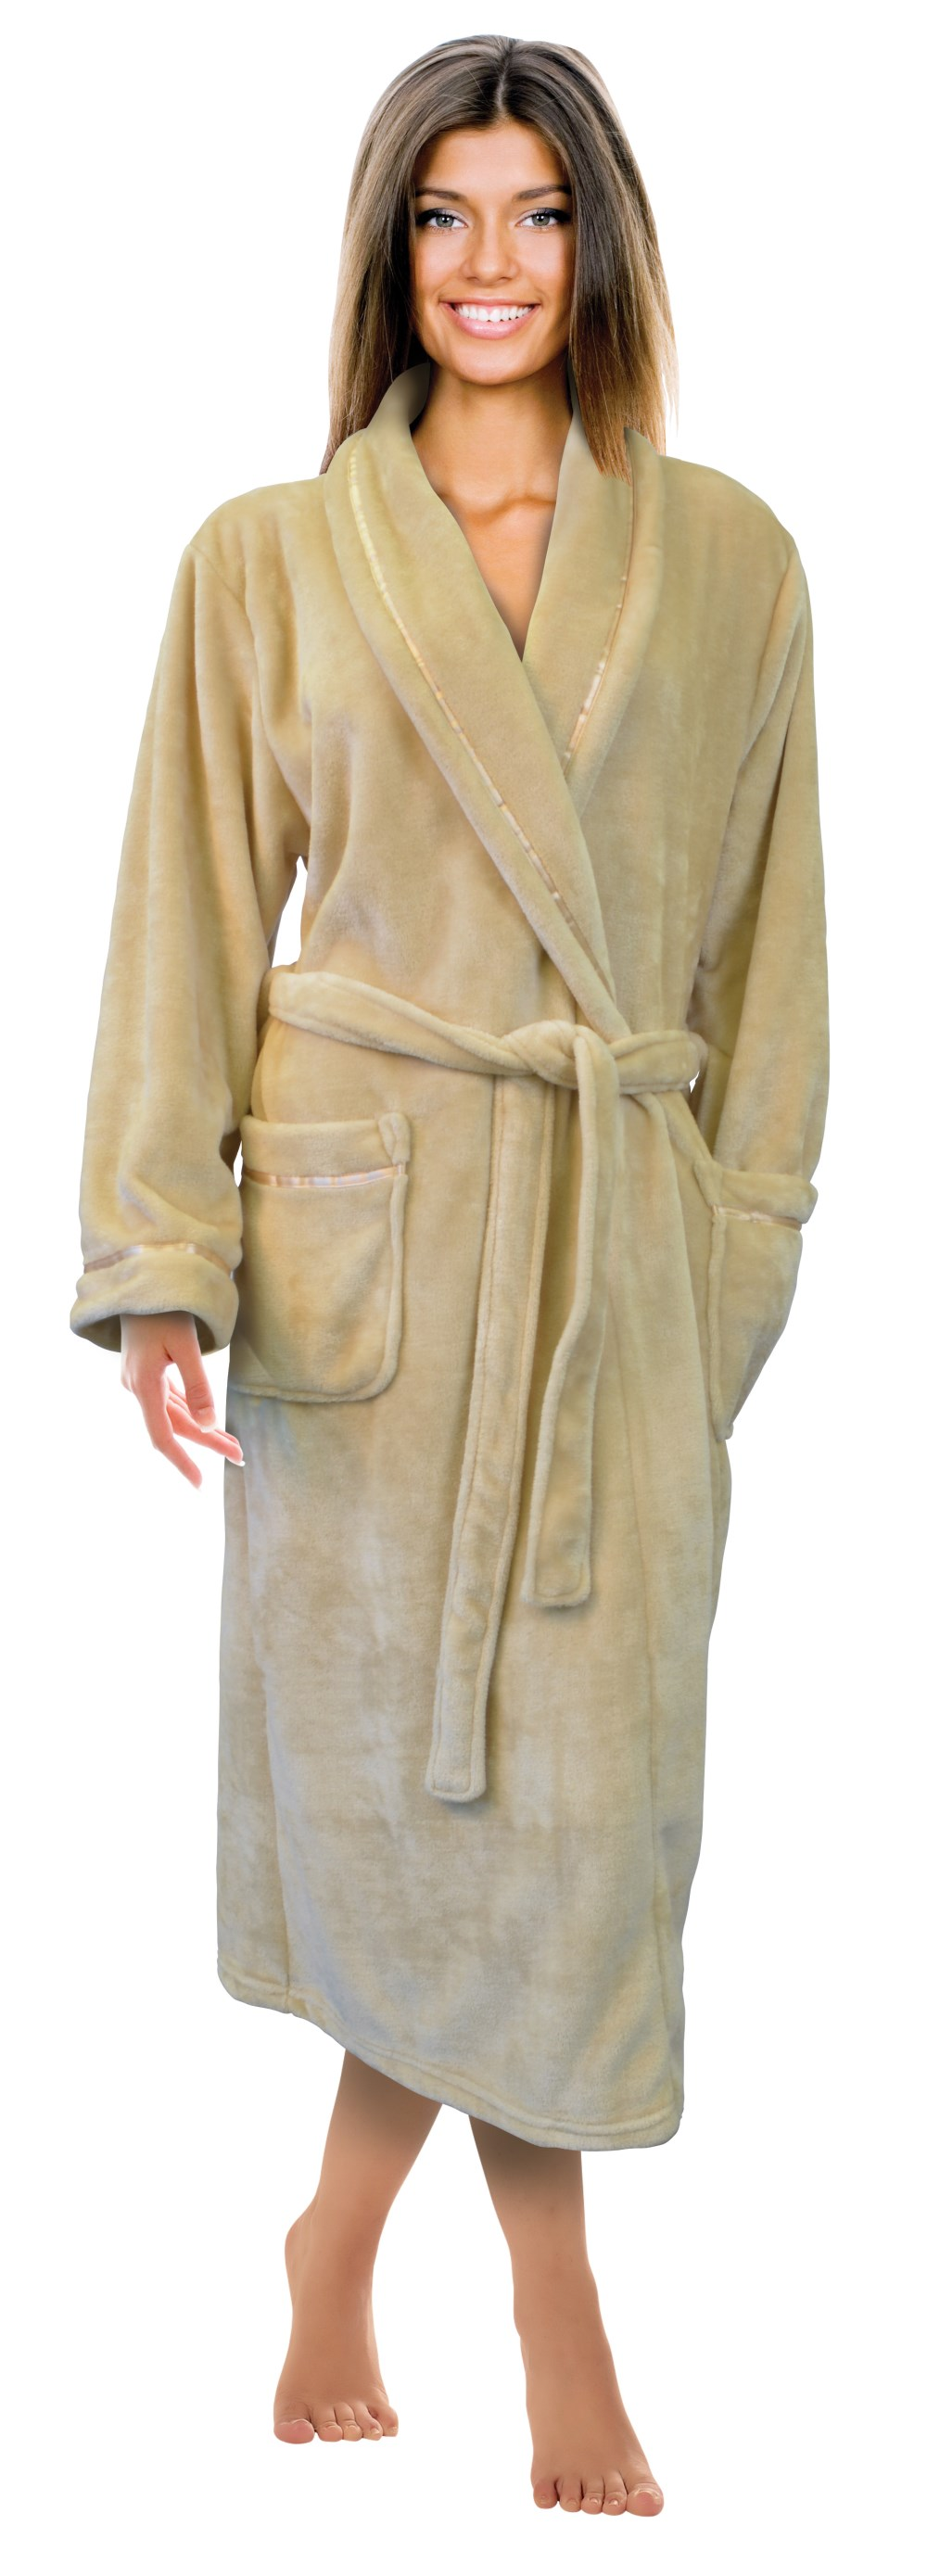 As perfect for chilly mornings as it is for cozy evenings in front of the fire, the Plush Signature Robe is truly a pampering bathrobe. Made of delicate superfine microfiber, this plush microfiber robe is softer than those offered at five-star hotels and spas. Lose yourself in /5().